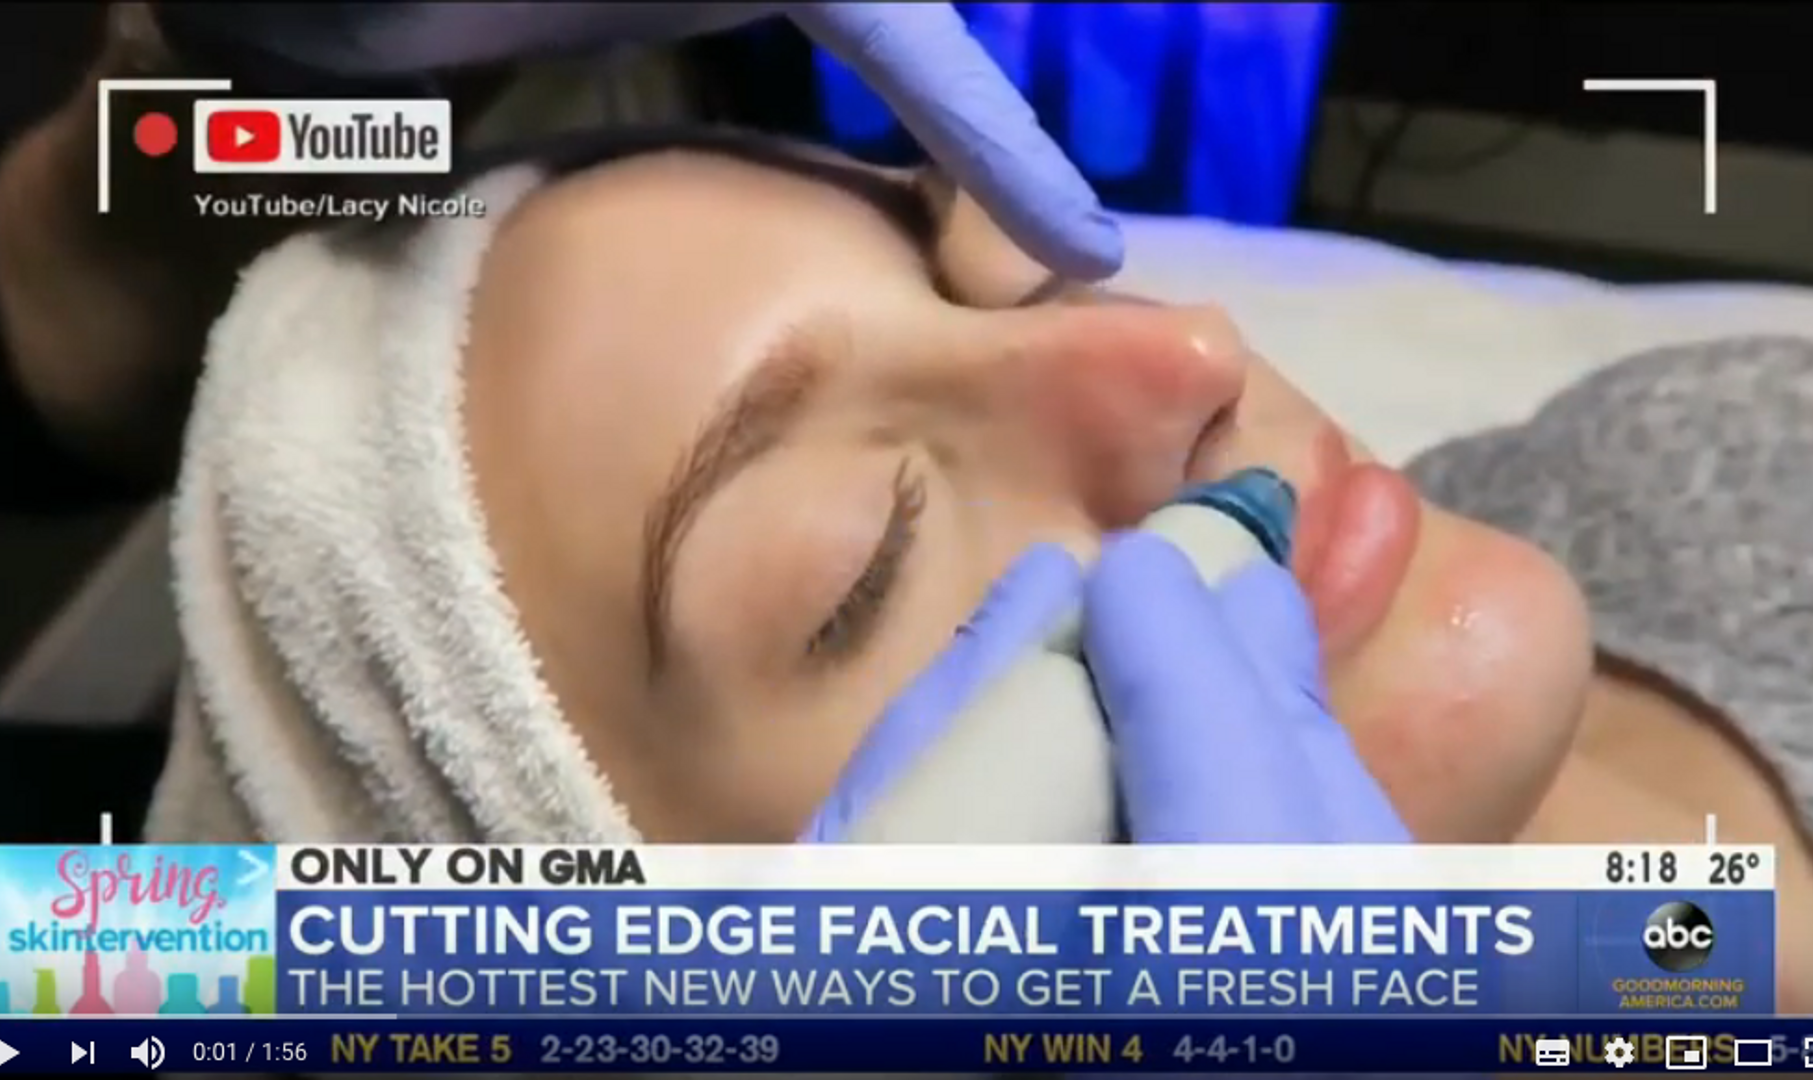 Good Morning America with HydraFacial